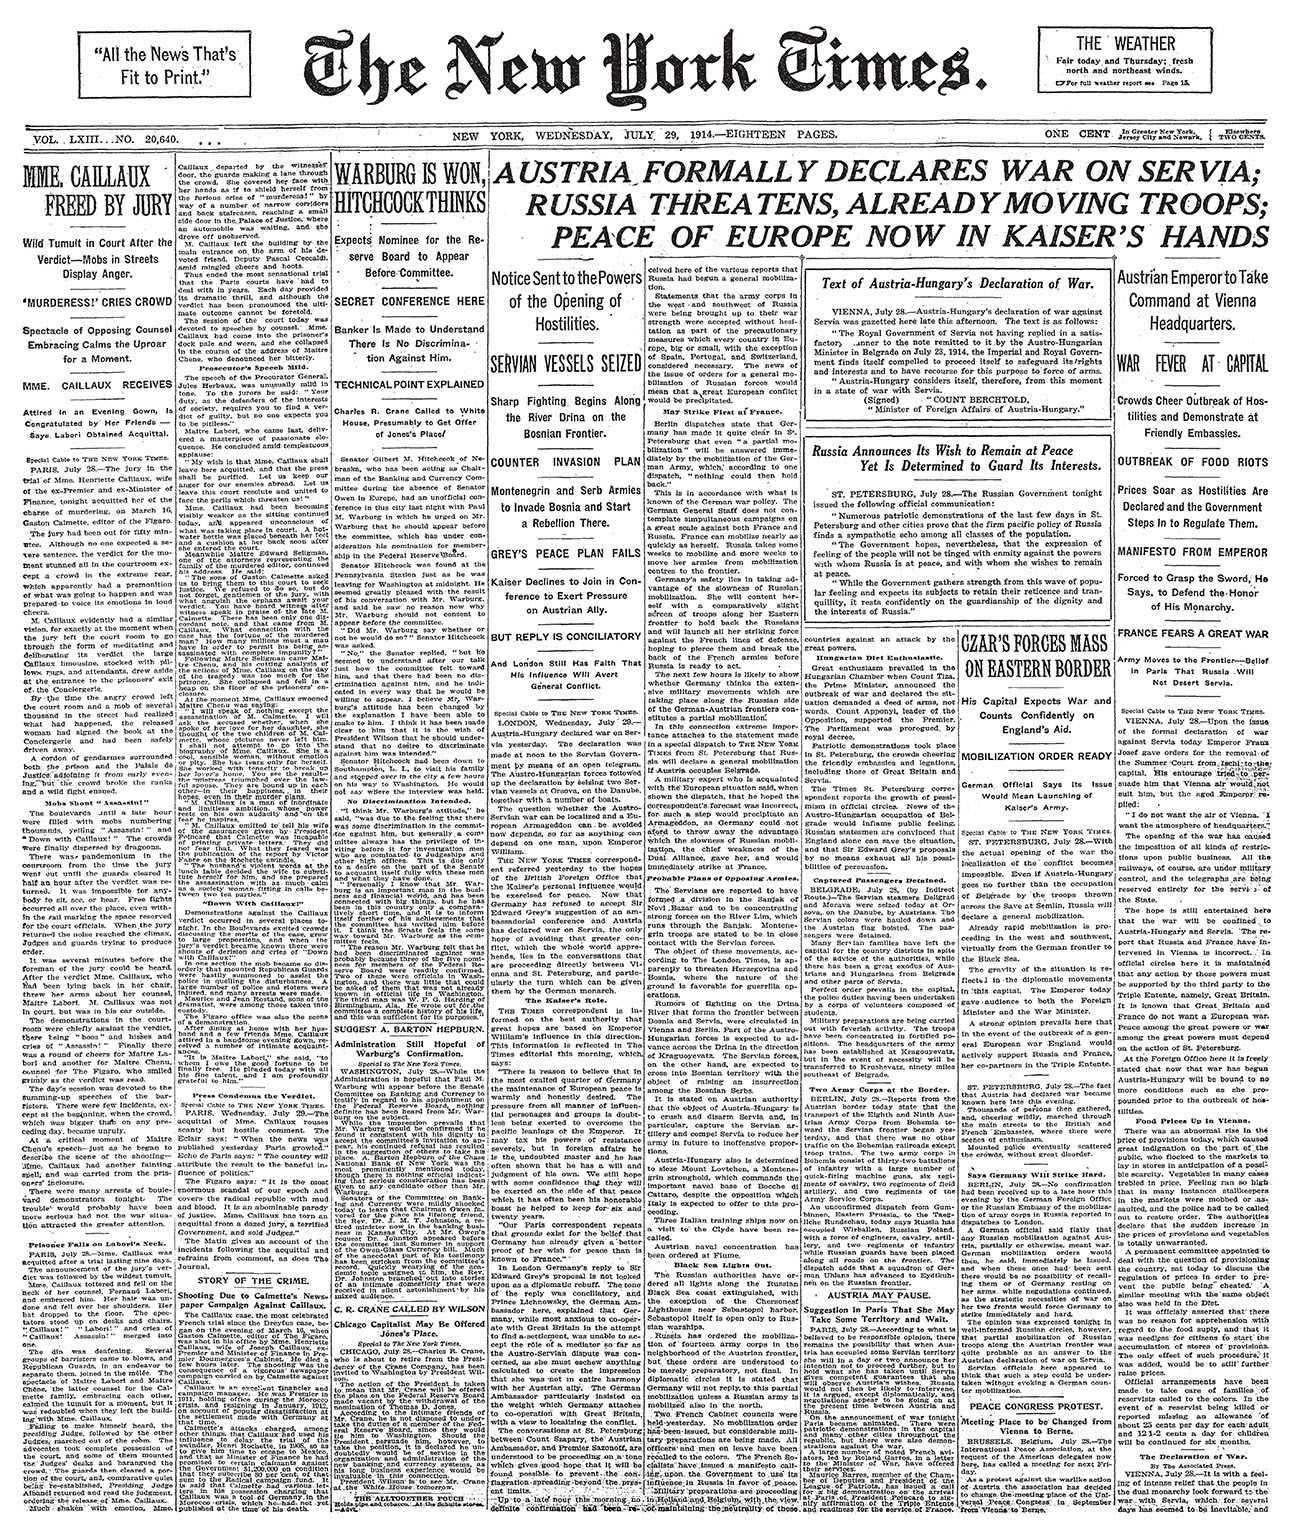 Newspaper from The New York Times, July 29, 1914